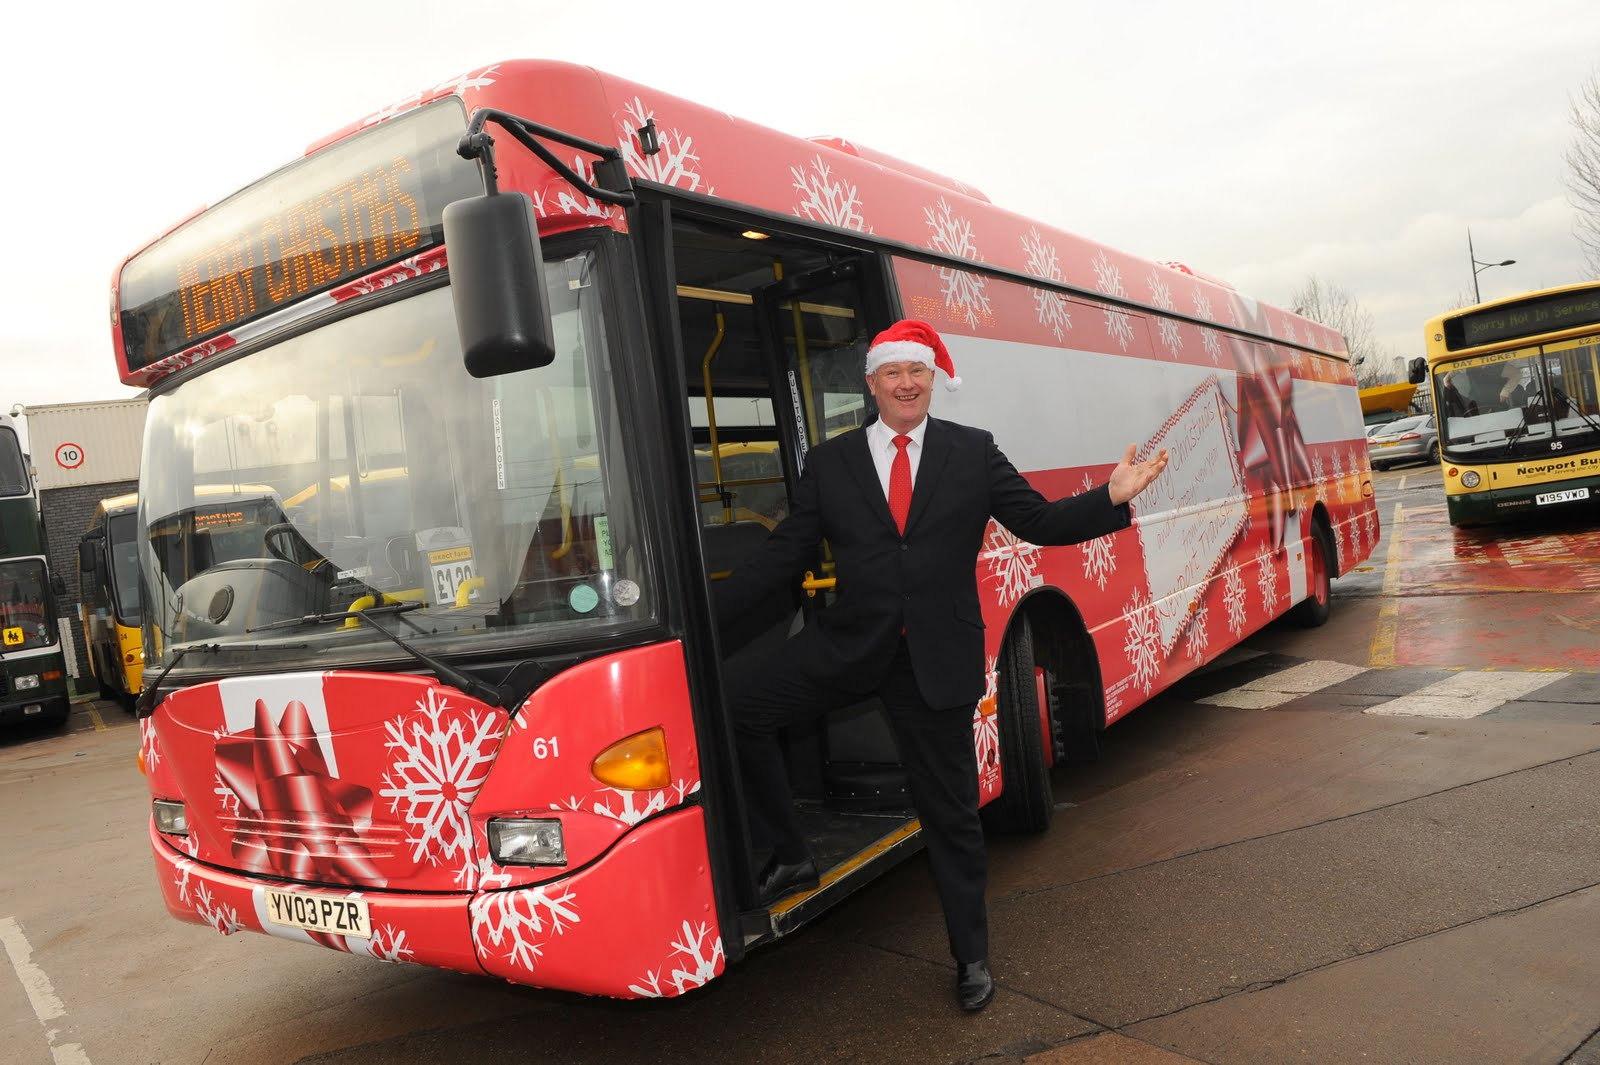 FREE BUS RIDES FOR CHRISTMAS | Newport City News